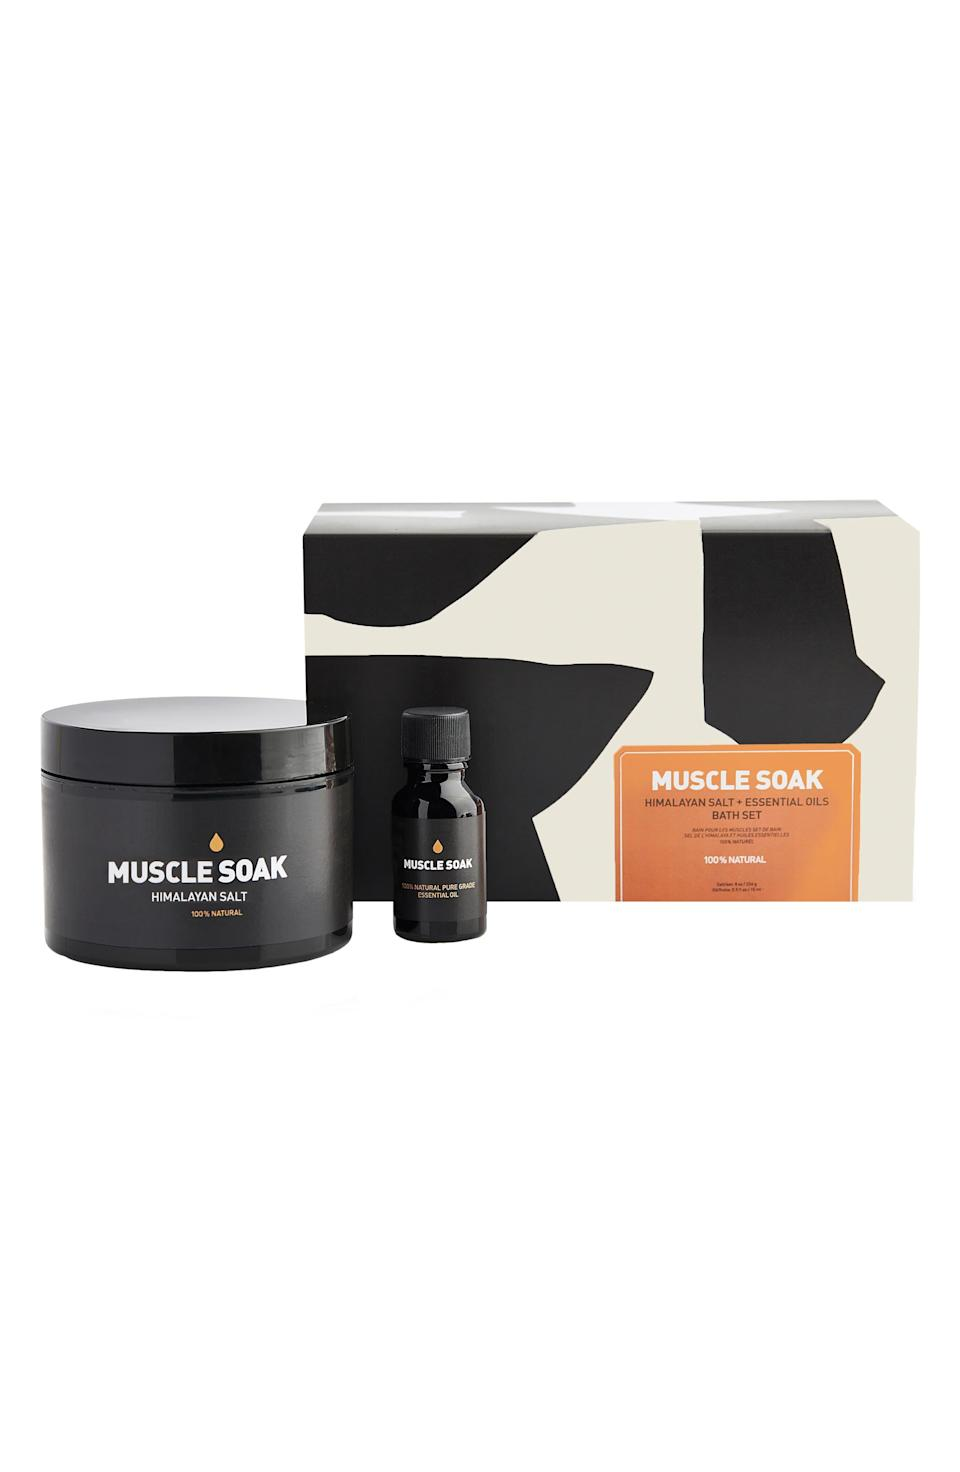 """<h3><strong>Way Of Will</strong> Muscle Soak Bath Set</h3><br><br>When you start hearing your dad's knees crack every time he stands up, it's time to get him this two-piece set for relieving minor aches and pains.<br><br><strong>Way Of Will</strong> Muscle Soak Bath Set, $, available at <a href=""""https://go.skimresources.com/?id=30283X879131&url=https%3A%2F%2Fshop.nordstrom.com%2Fs%2Fway-of-will-muscle-soak-bath-set%2F5302109%3Forigin%3Dcategory-personalizedsort%26breadcrumb%3DHome%252FMen%252FGrooming%2520%2526%2520Cologne%252FGifts%2520%2526%2520Sets%26color%3Dnone"""" rel=""""nofollow noopener"""" target=""""_blank"""" data-ylk=""""slk:Nordstrom"""" class=""""link rapid-noclick-resp"""">Nordstrom</a>"""